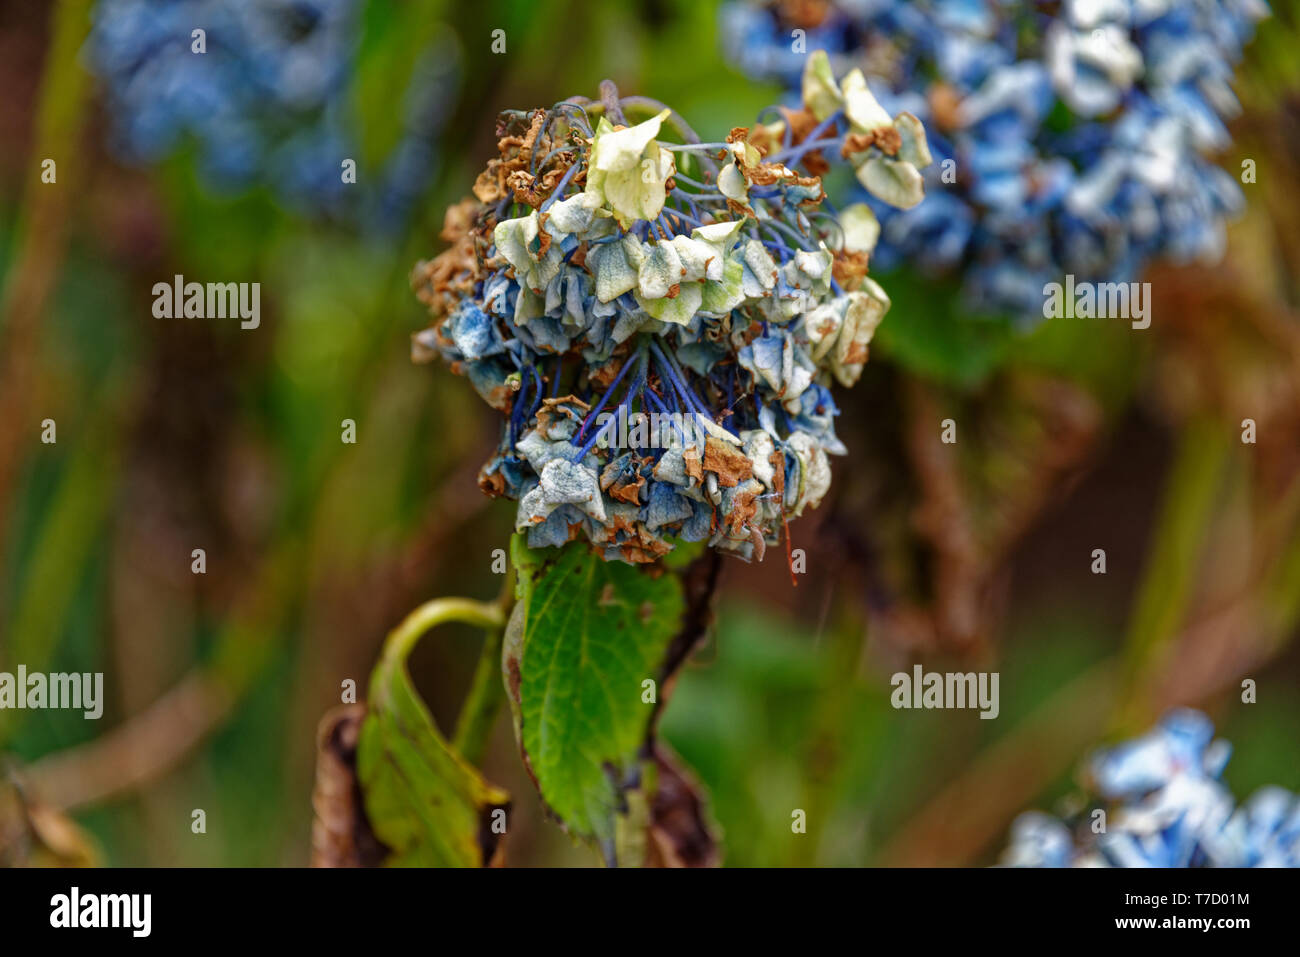 A Hydrangea Flower Showing The Signs Of Drought Turning Brown And Drooping Stock Photo Alamy